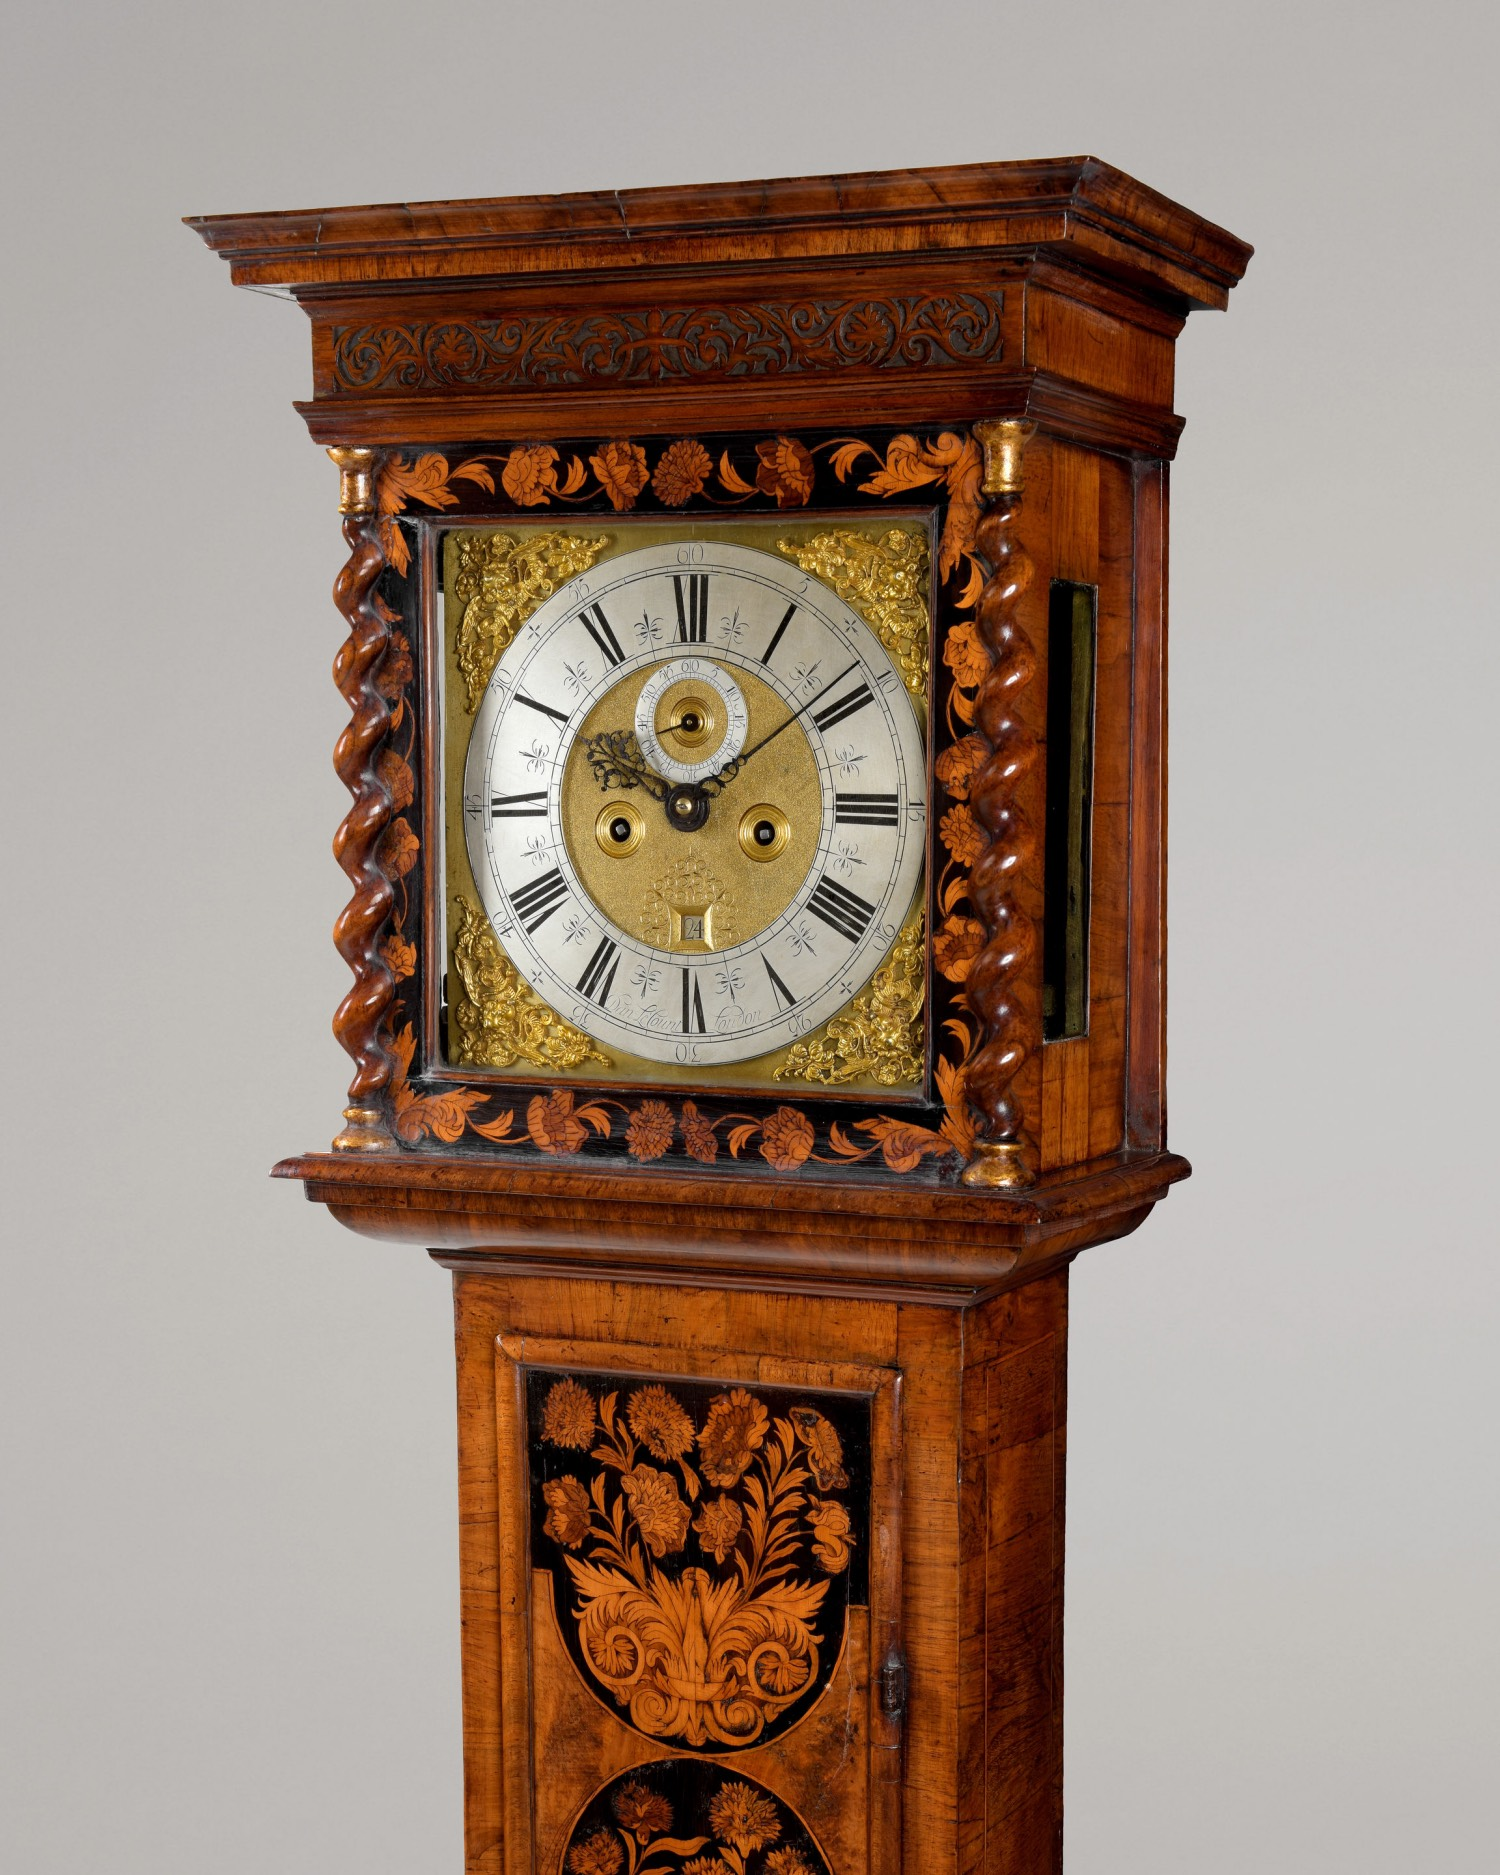 DANIEL LECOUNT. A FINE WILLIAM AND MARY PERIOD FLORAL MARQUETRY AND WALNUT 8-DAY LONGCASE CLOCK OF BEAUTIFUL PROPORTIONS AND COLOUR.